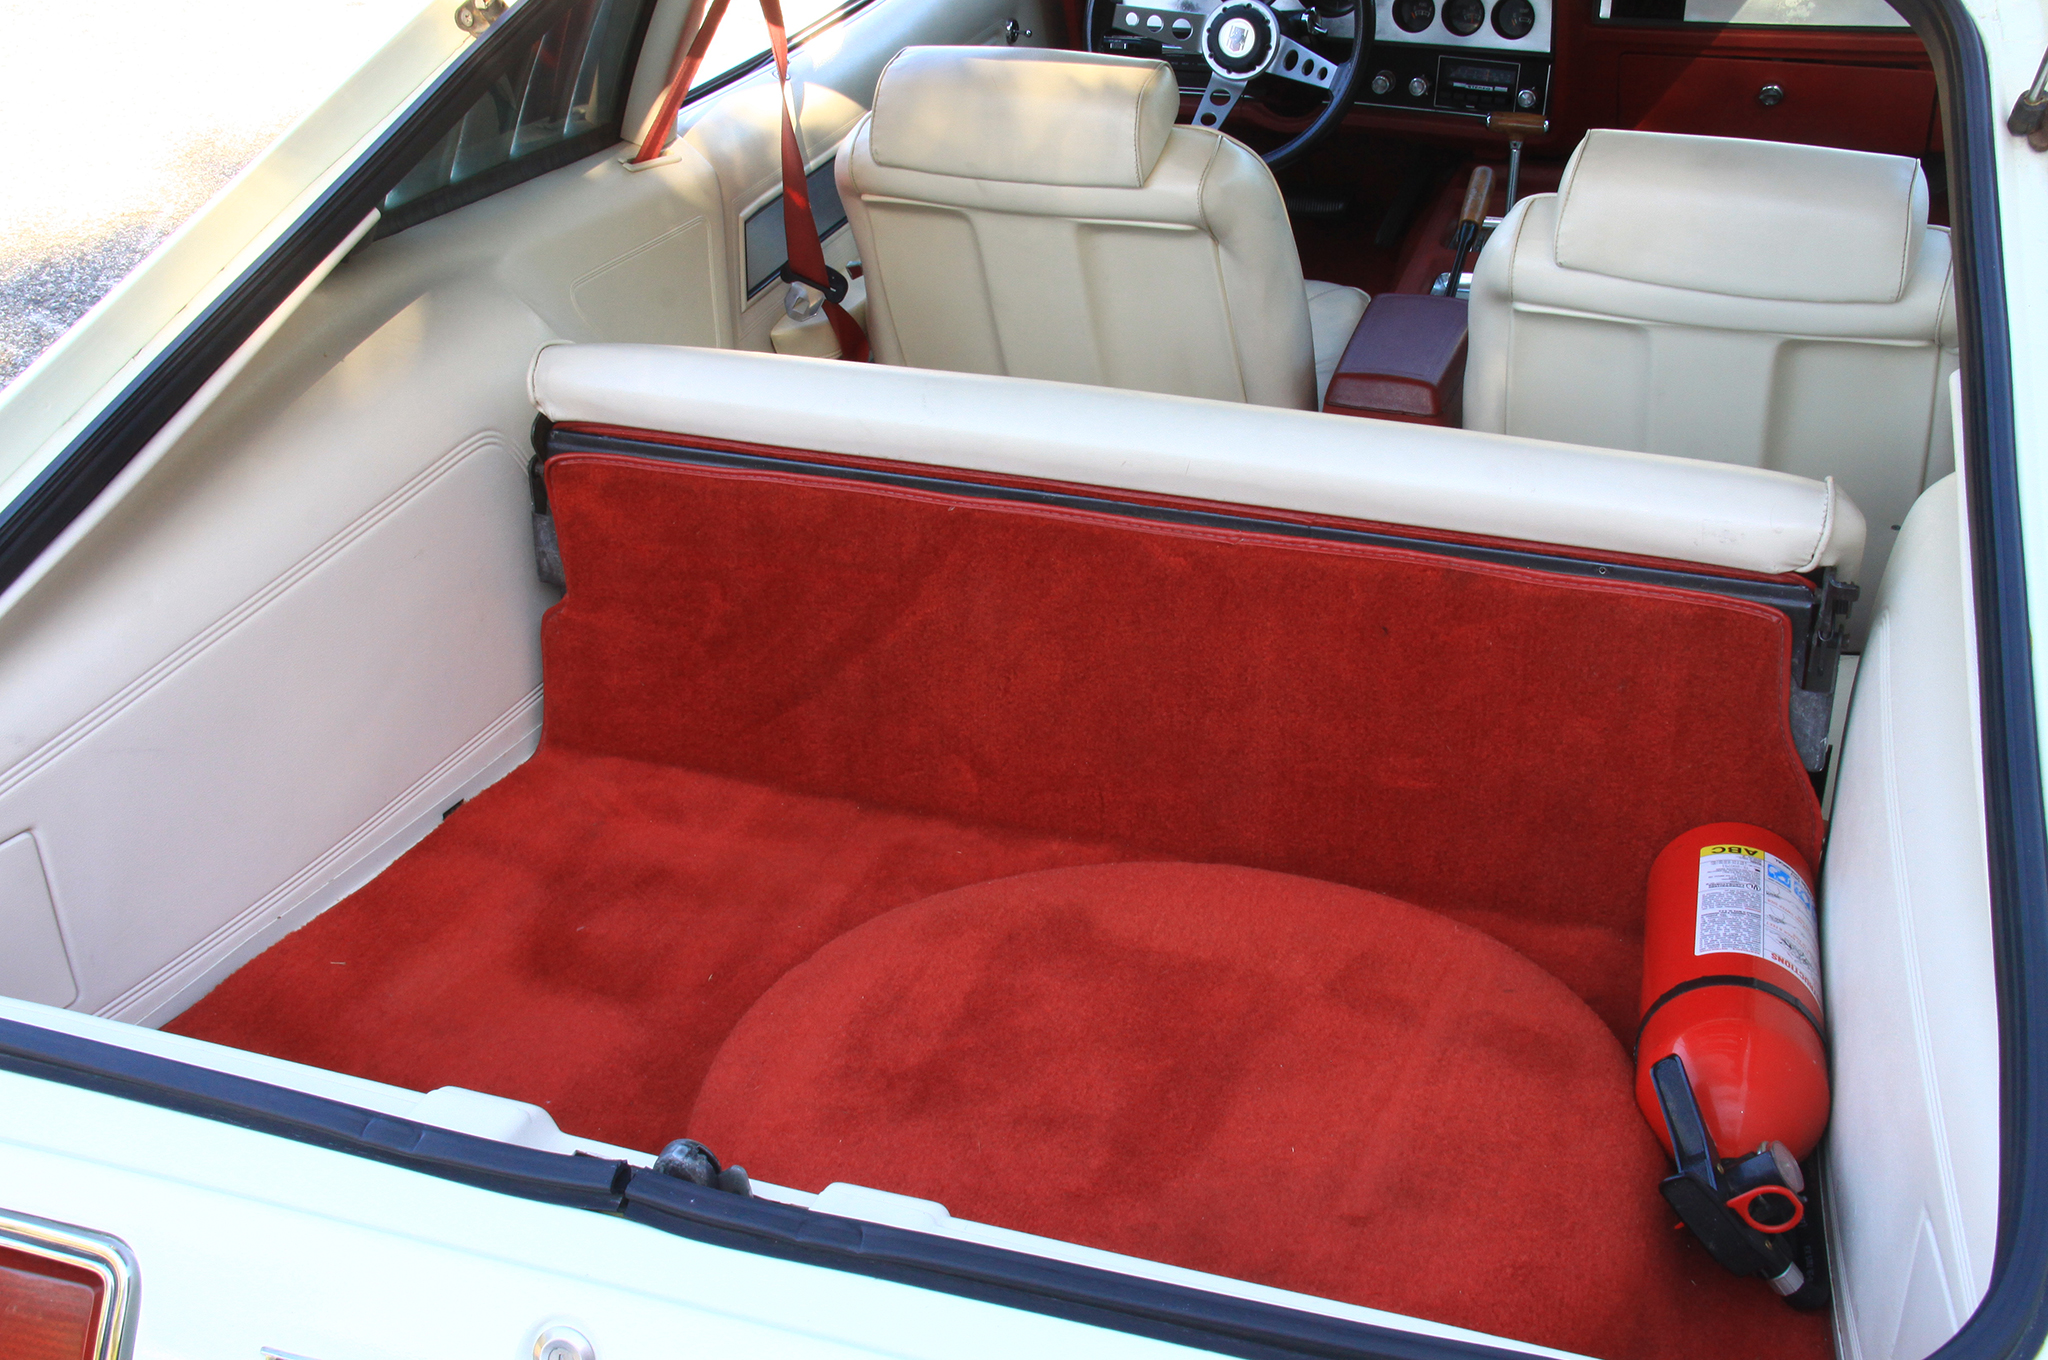 Check out this pristine fold-down rear seat area, which is factory. An abundance of towels and blankets protected it from the sun for nine years.